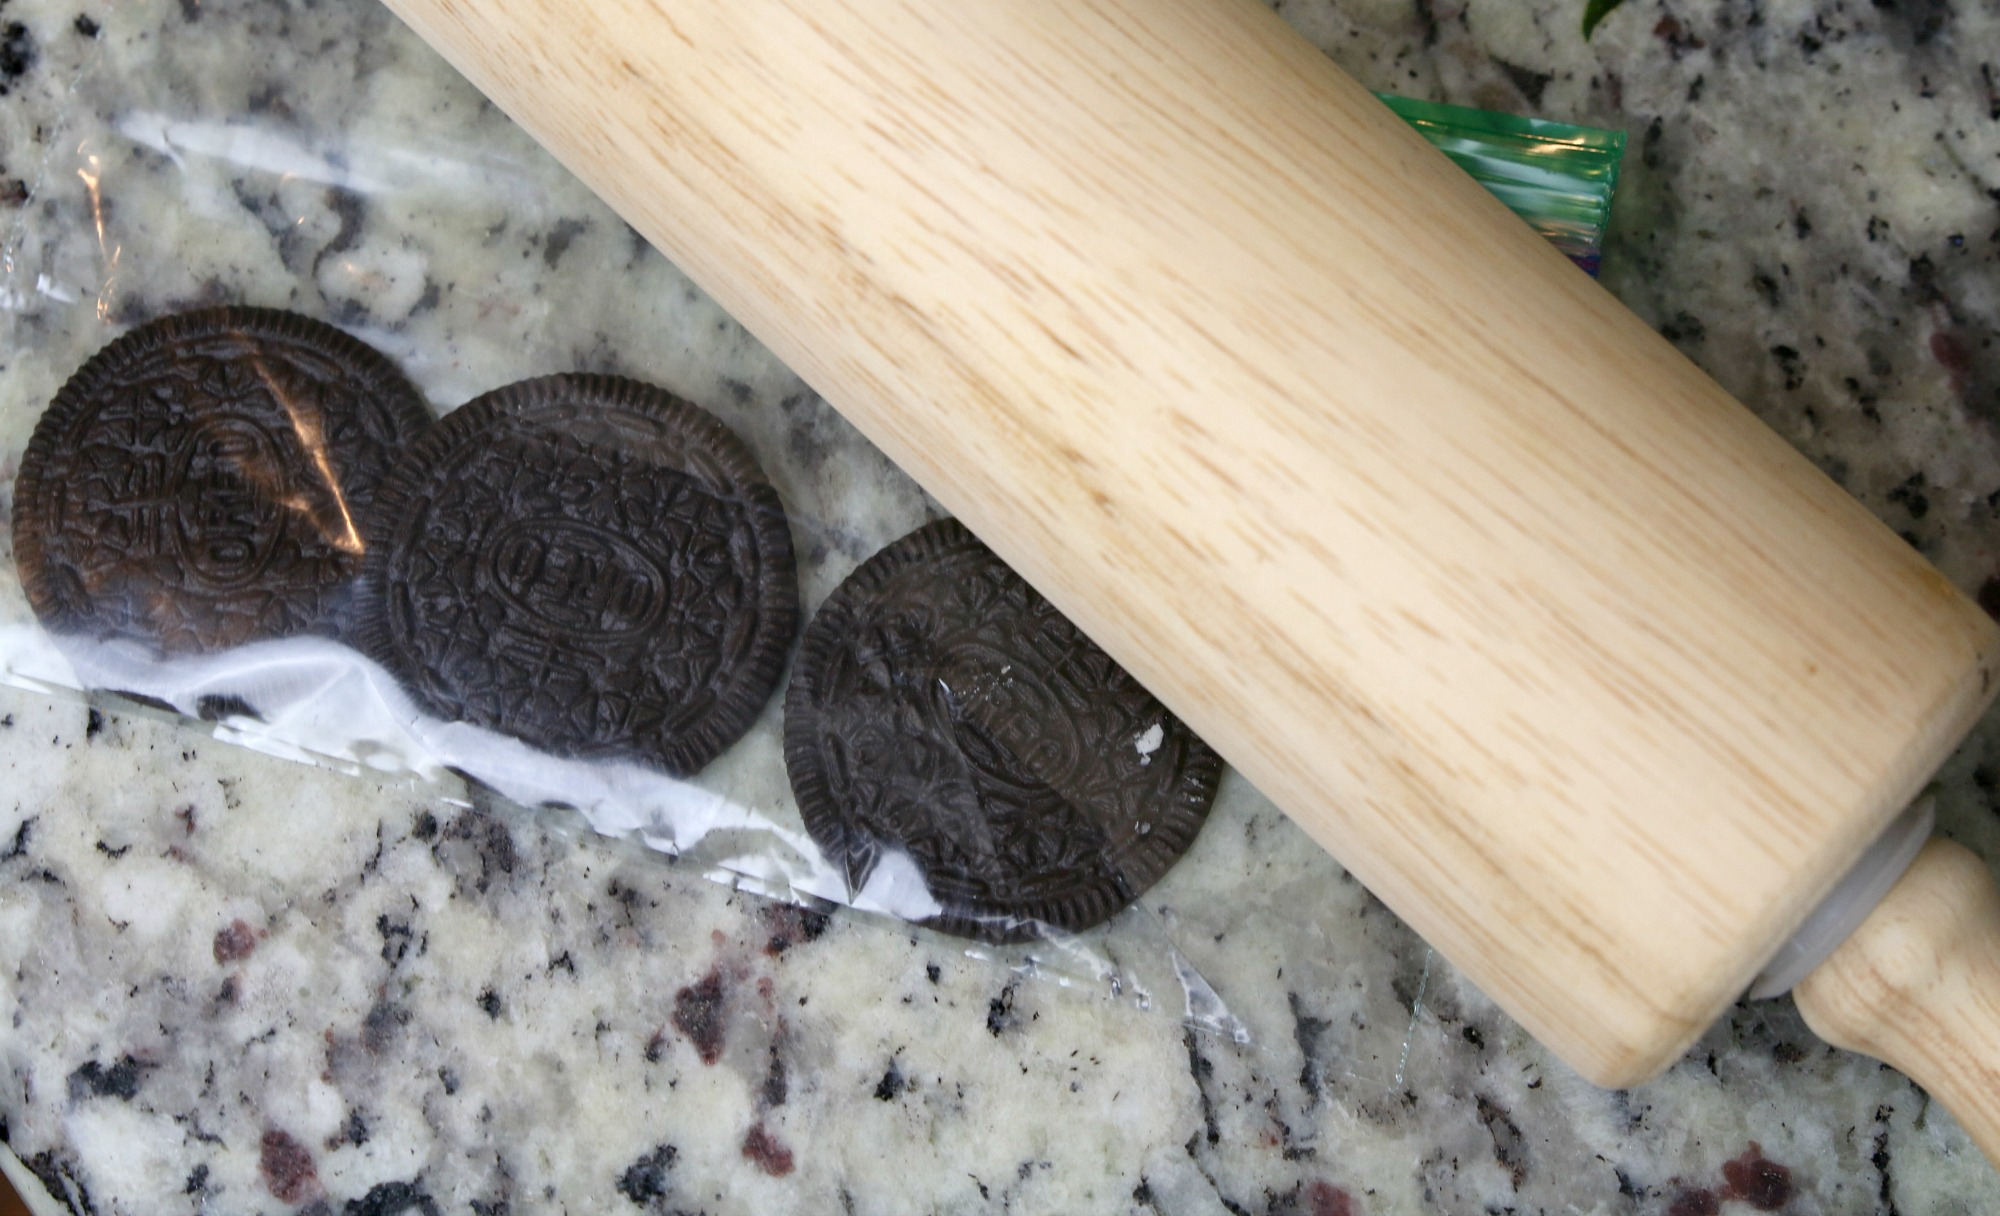 crush Oreo cookies with rolling pin